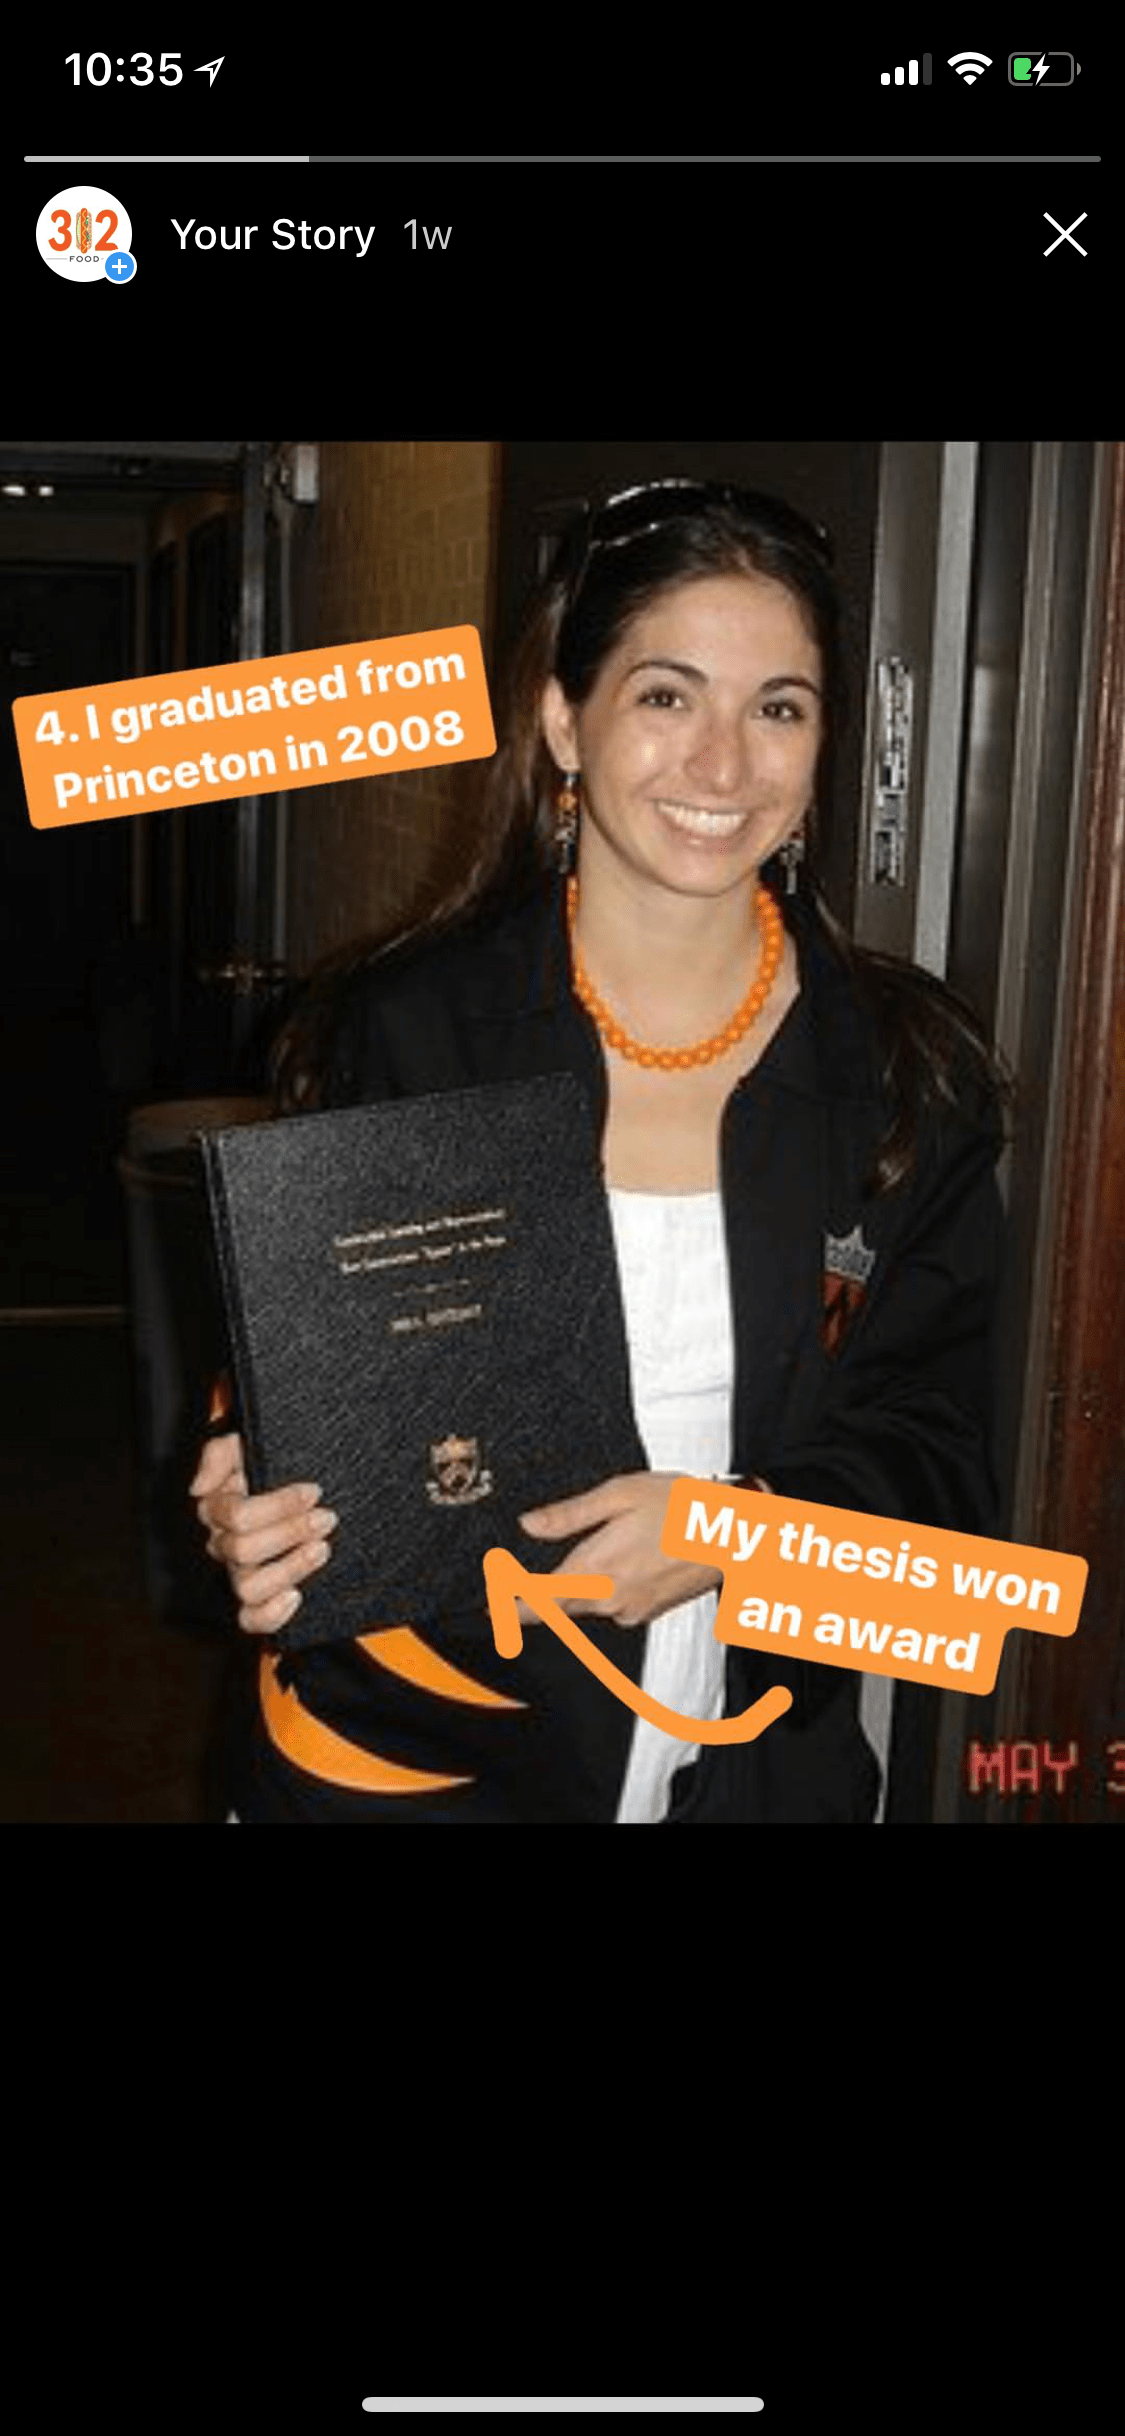 Princeton with Honors